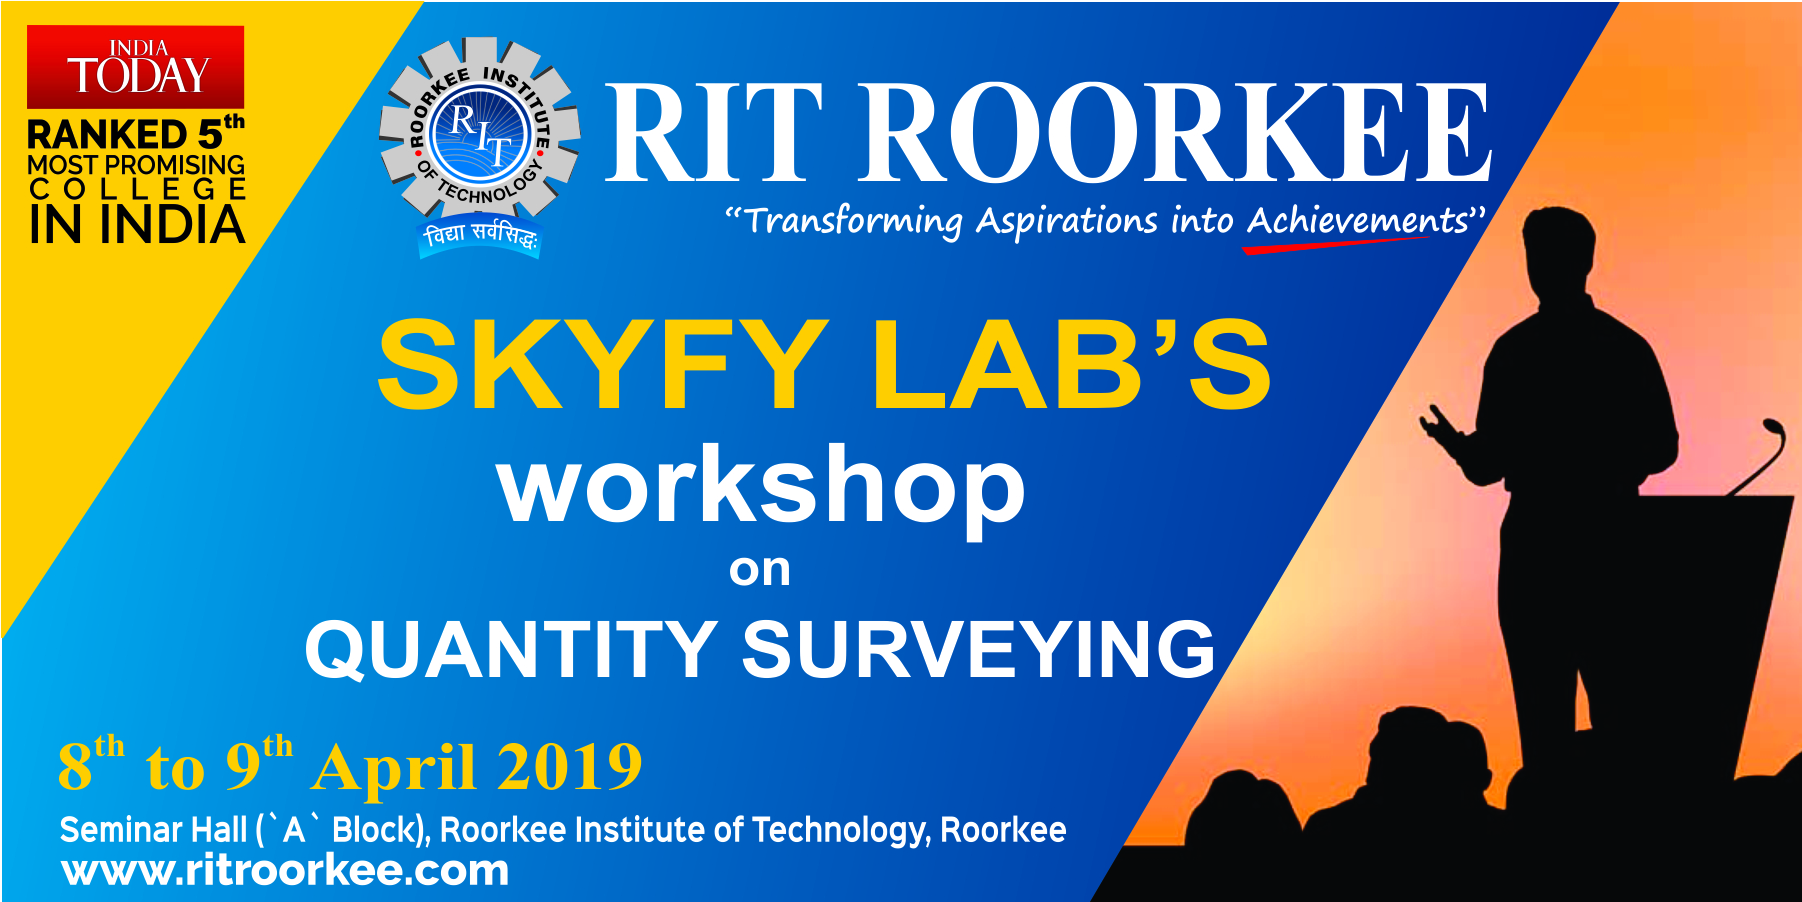 RIT Workshop on Quantity Surveying by SKYFY Labs